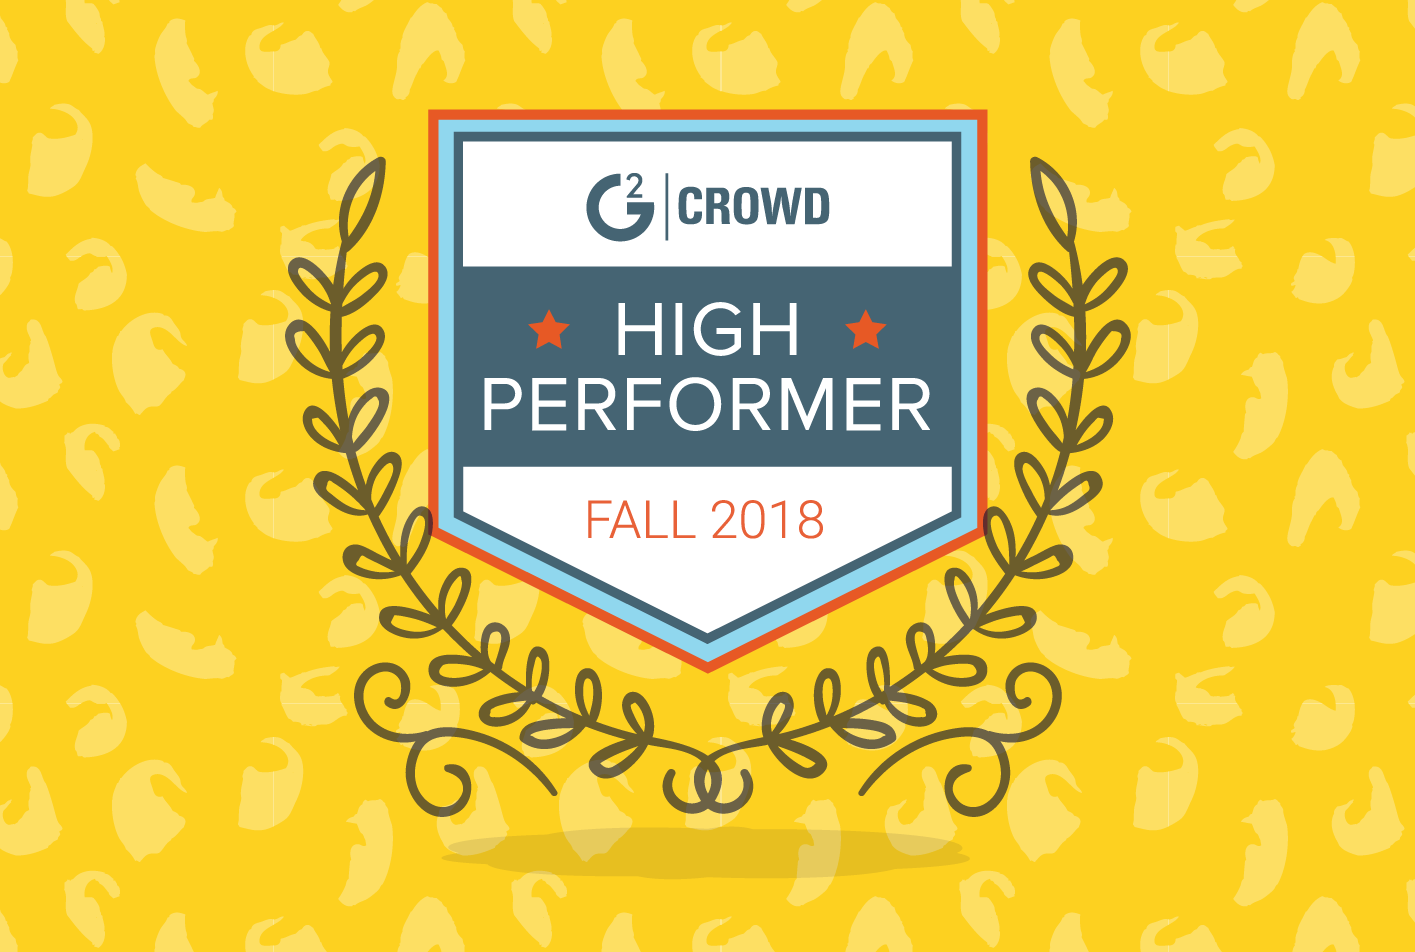 g2 crowd crm rankings nutshell high performer top ten crms